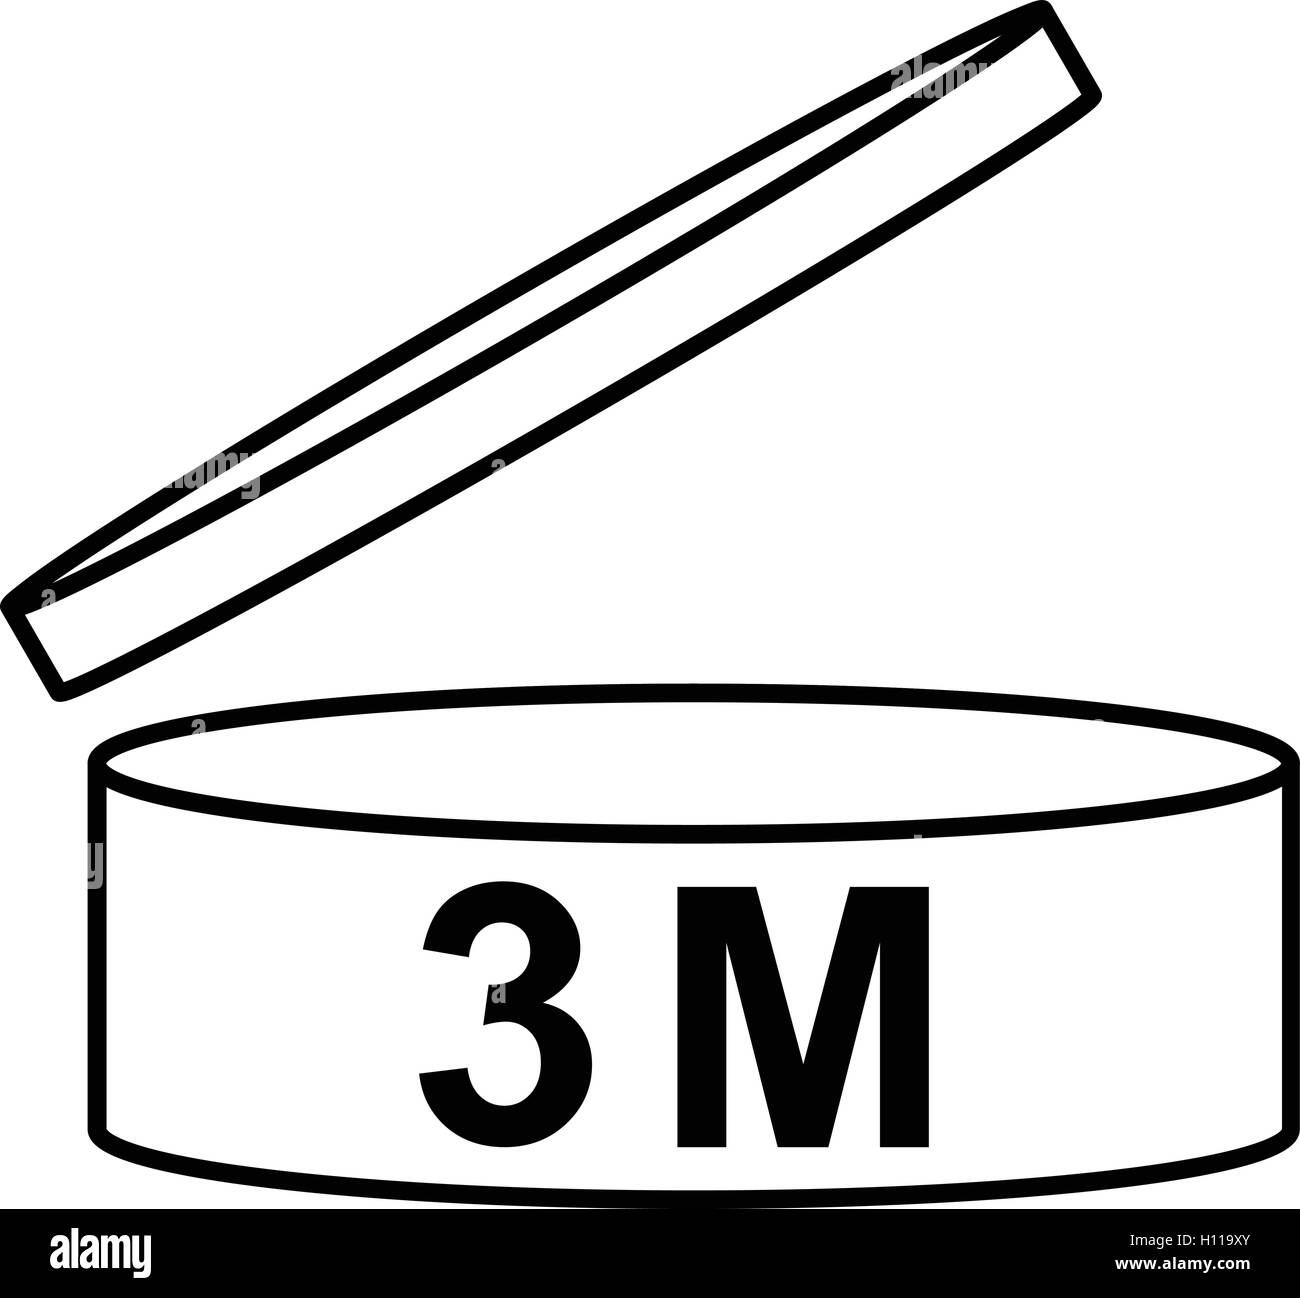 PAO cosmetics symbol 3M, Period after opening symbol three month, vector illustration. Stock Vector